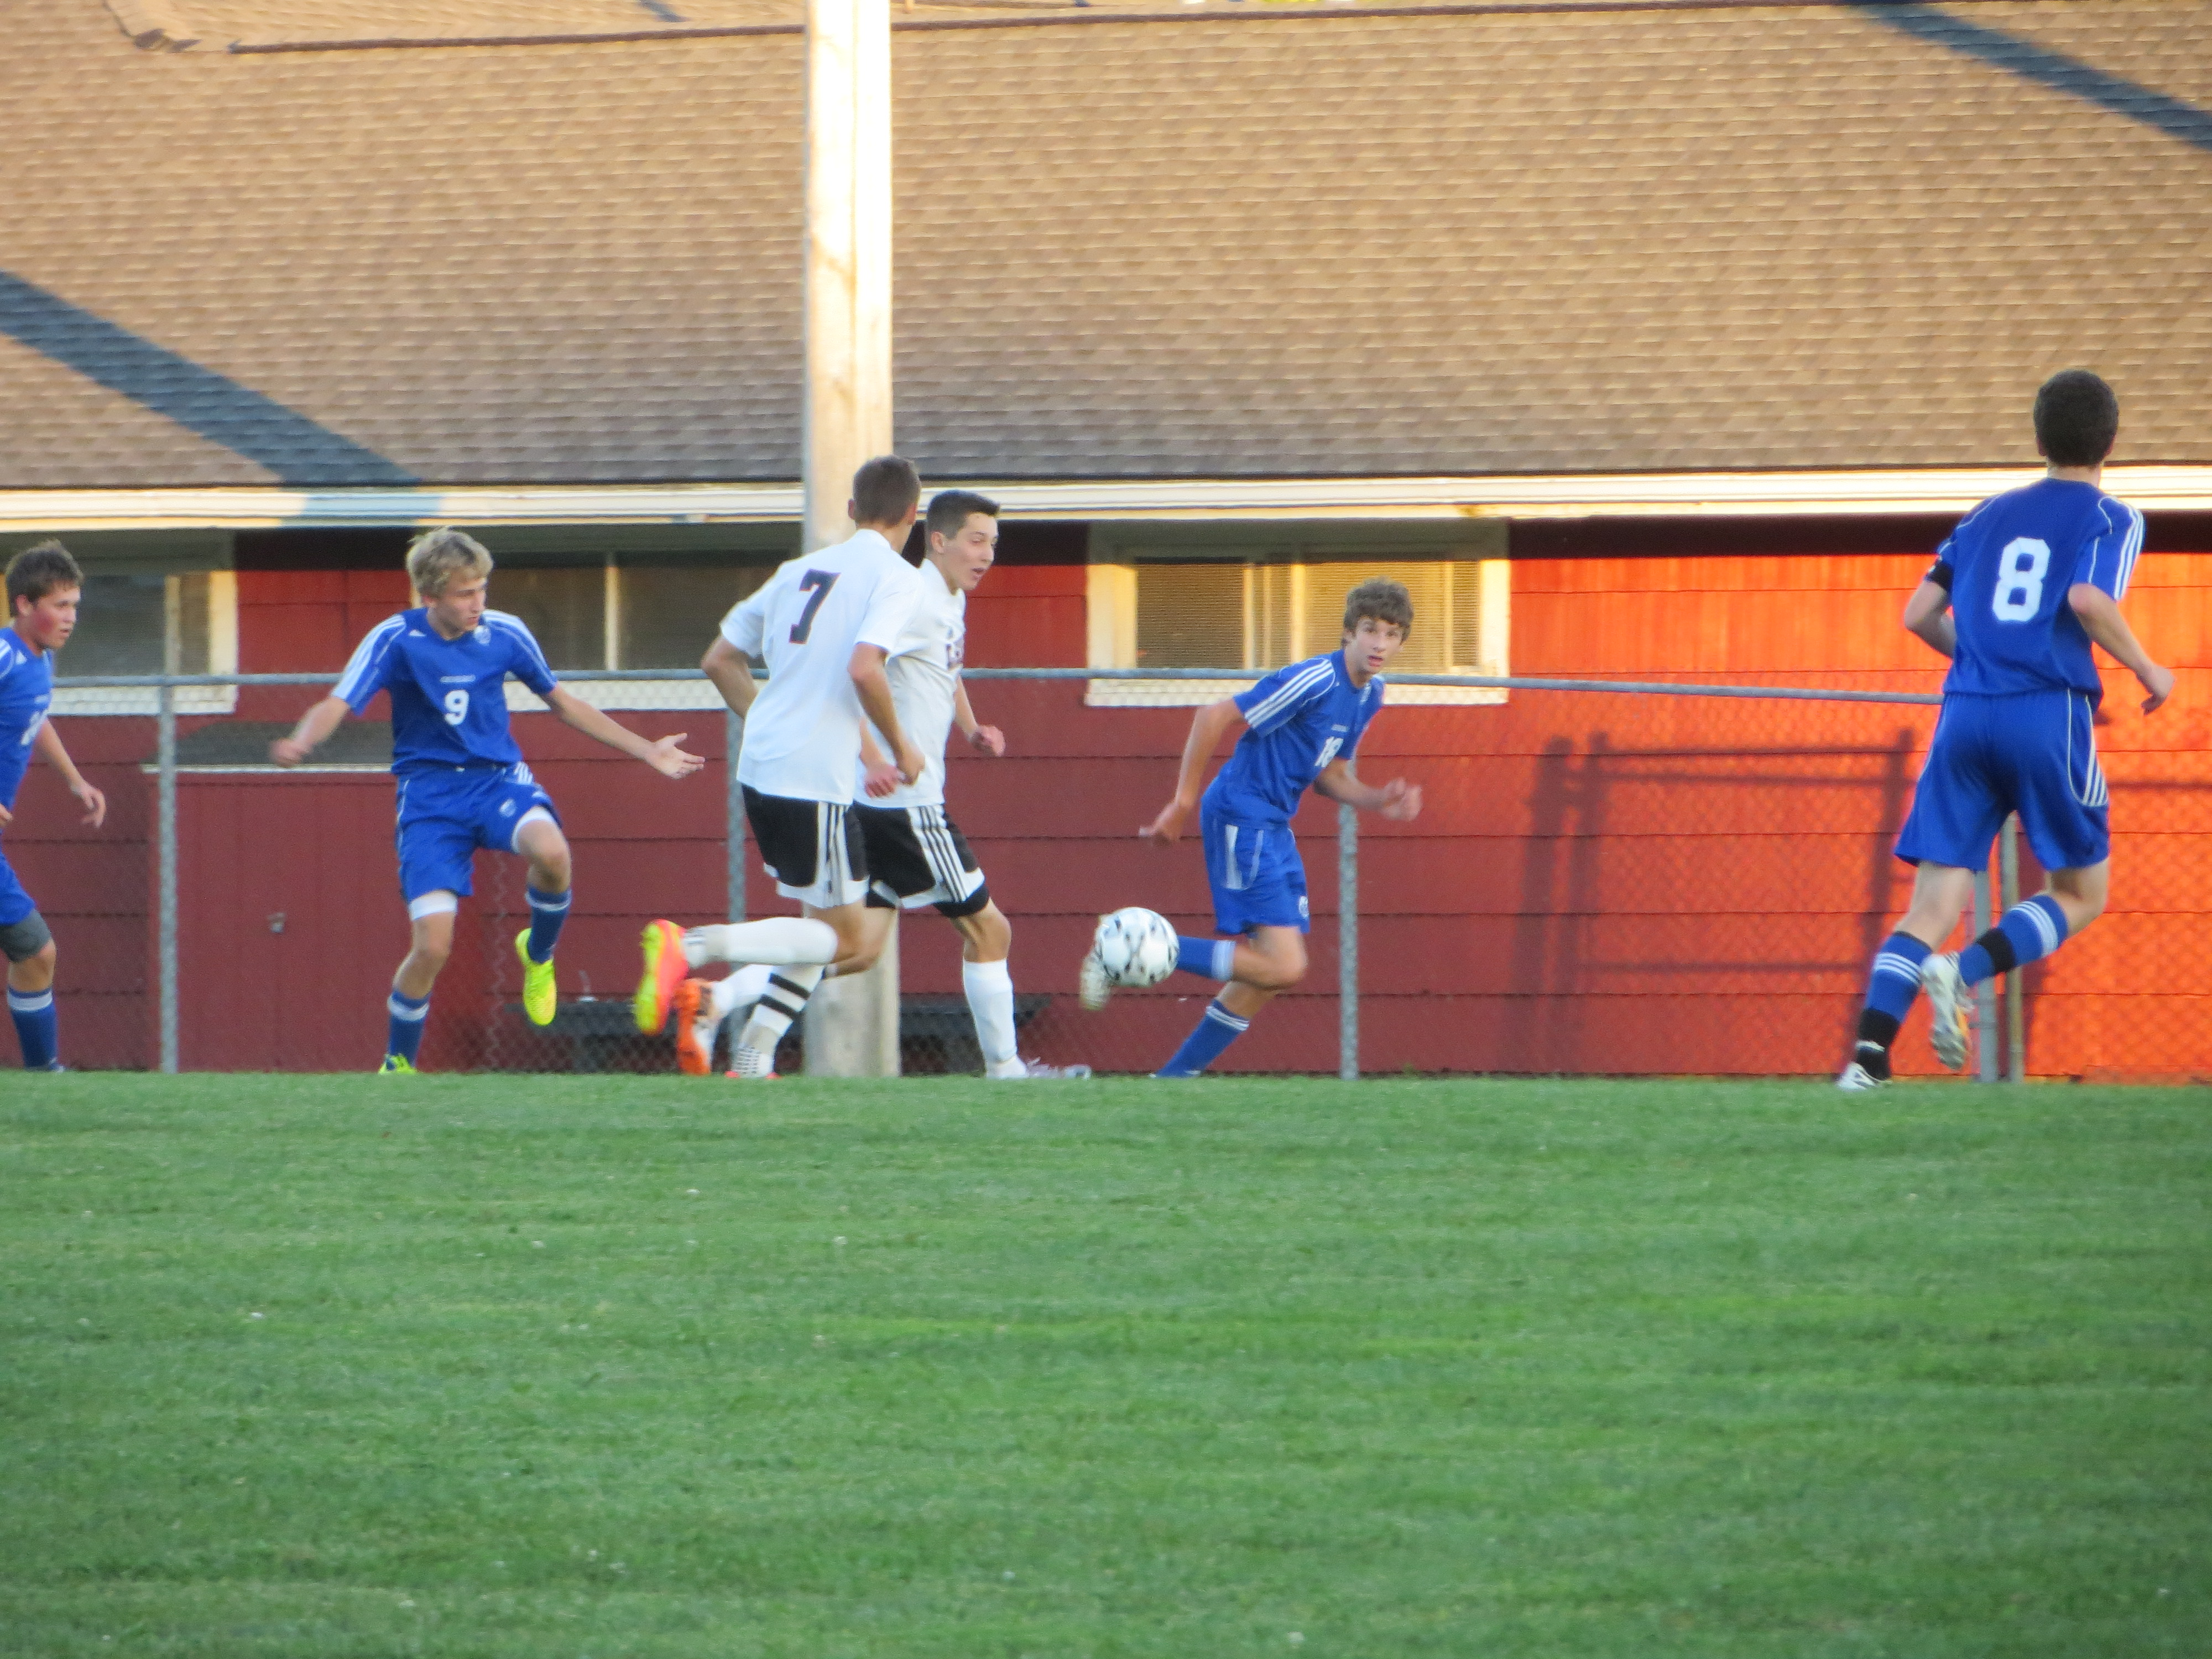 BOYS' SOCCER: Le Roy Knights Claim a Victory Over Geneseo